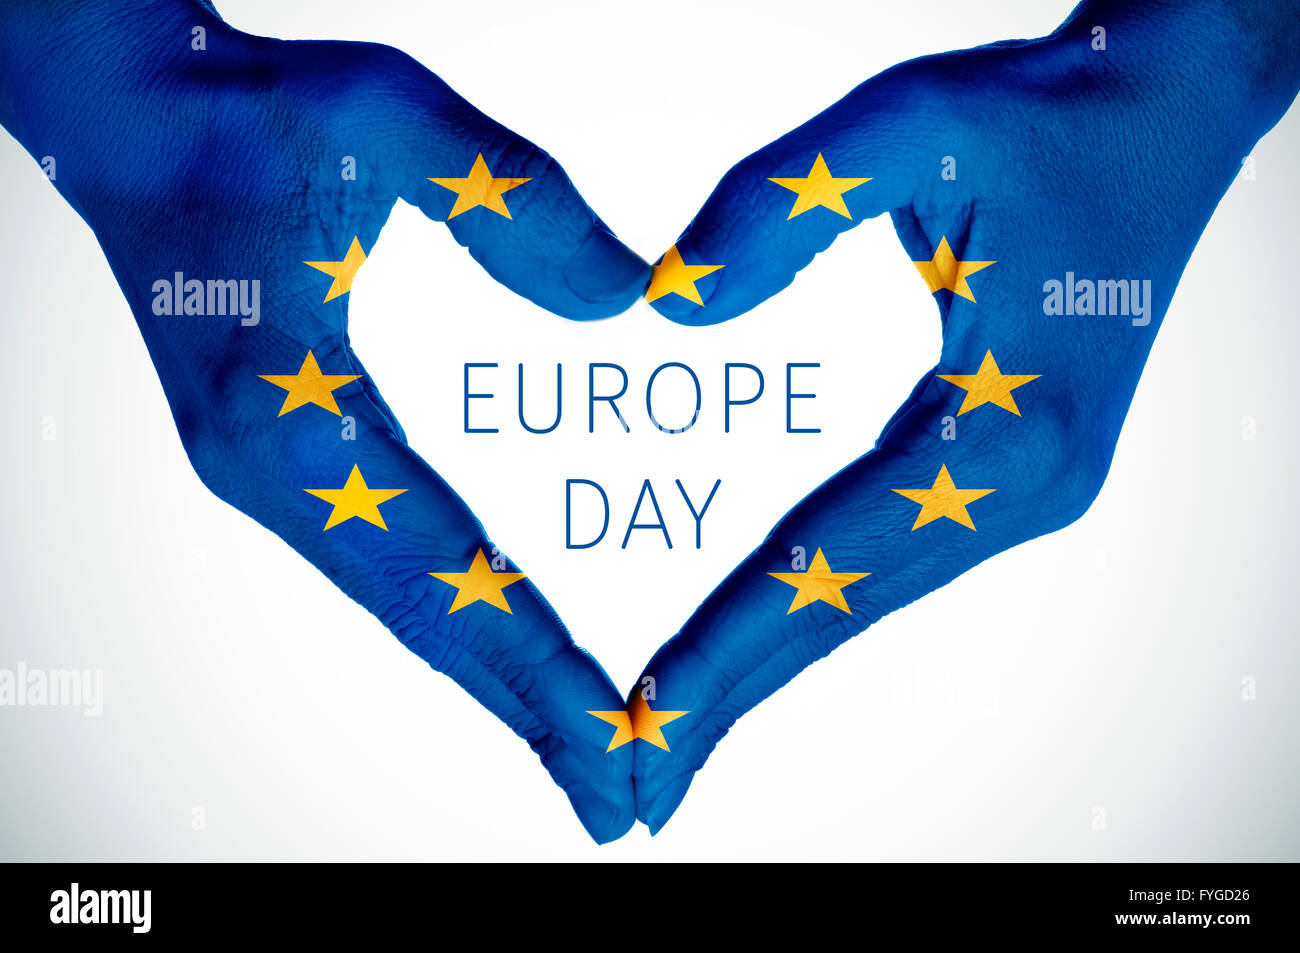 closeup of the hands of a young woman forming a heart patterned as the flag of the European Union and the text Europe - Stock Image